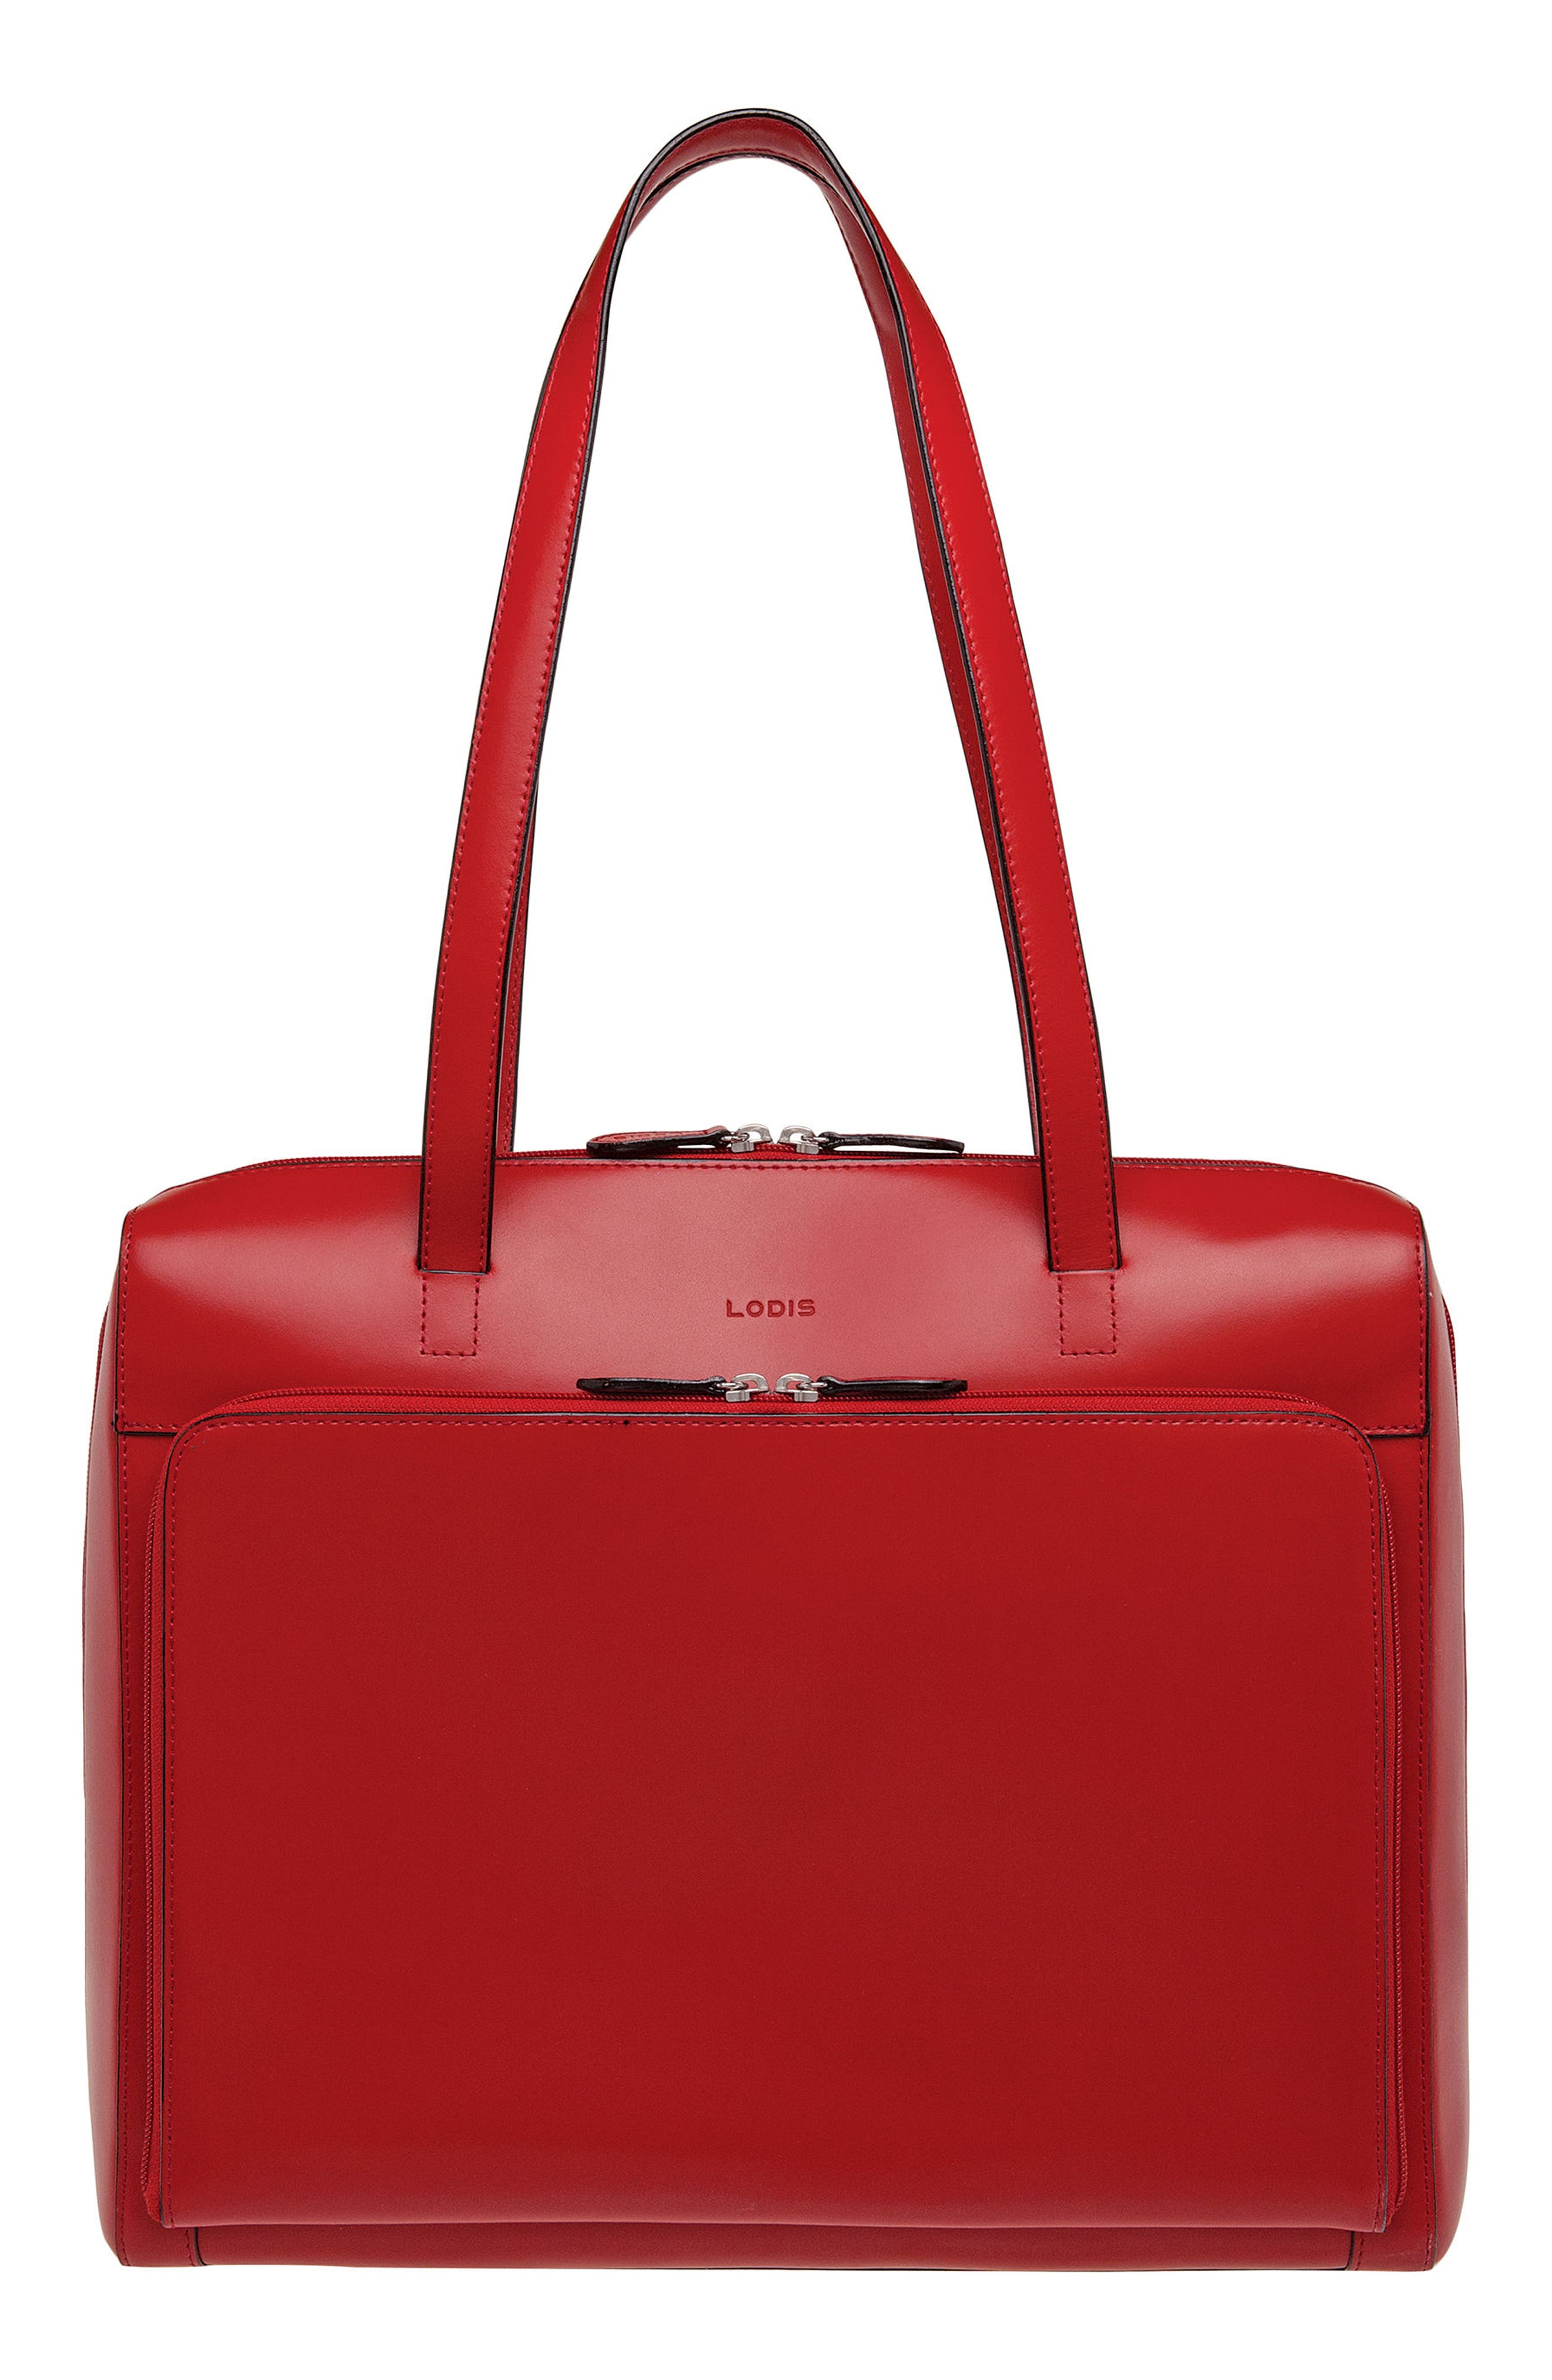 Lodis Audrey Under Lock & Key Organizer Tote,                         Main,                         color, Red/ Black